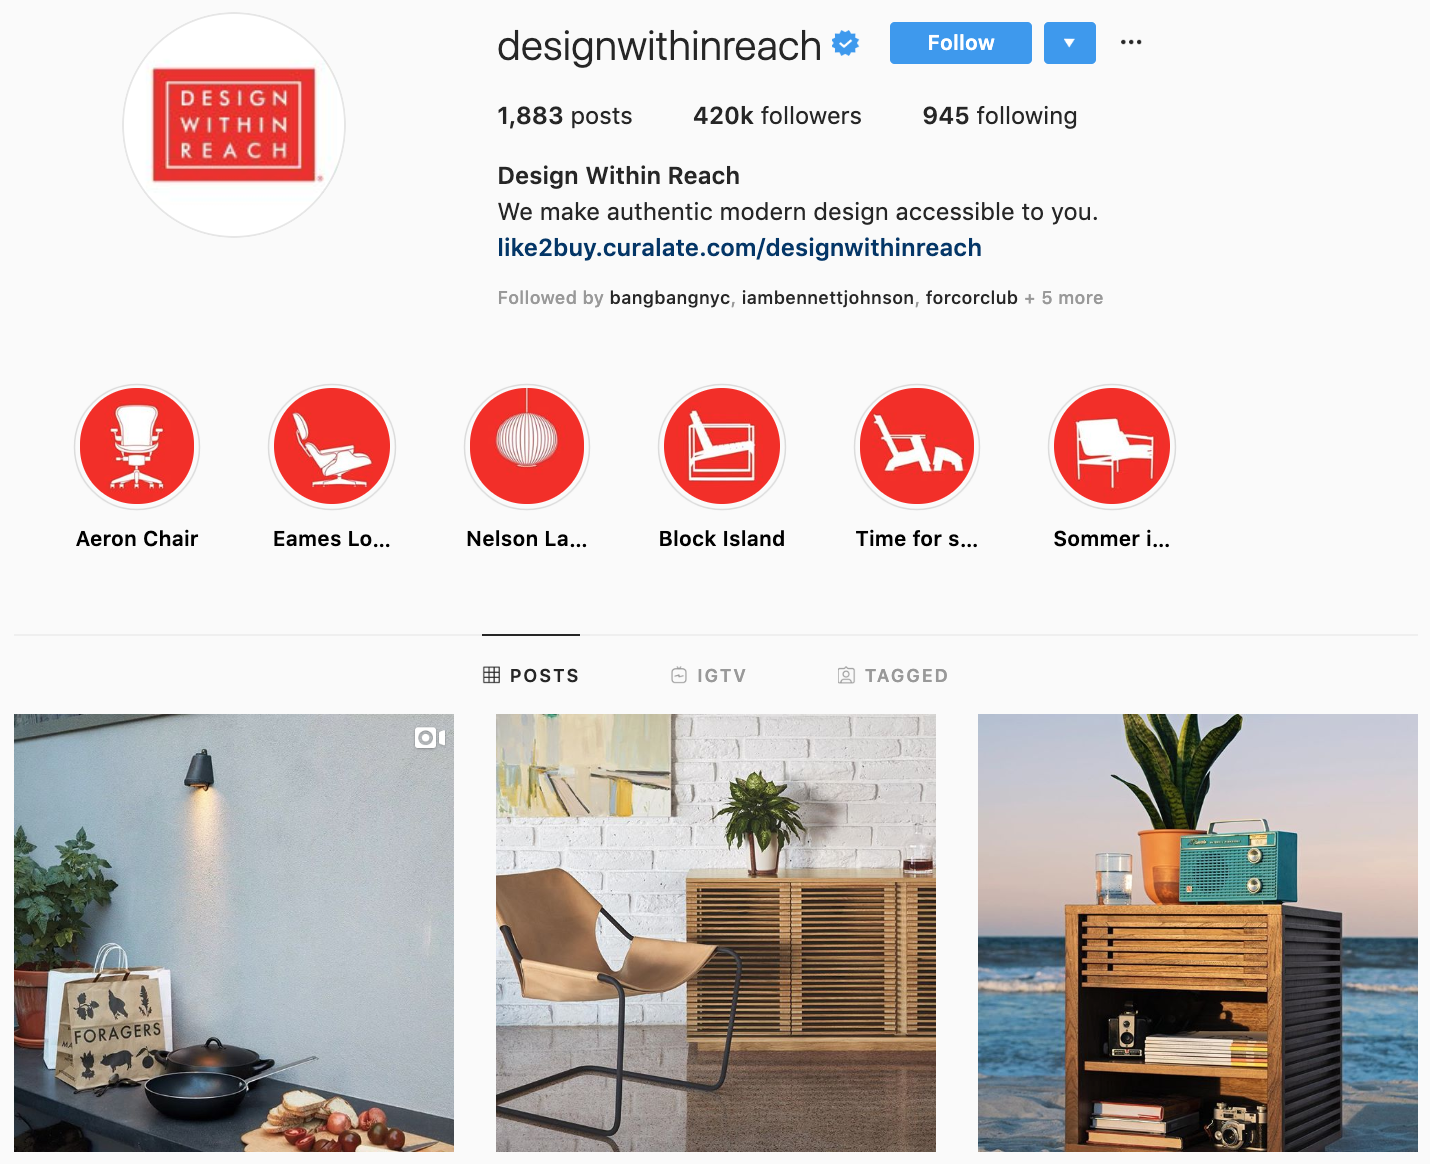 Design Within Reach on Instagram - best brands to follow